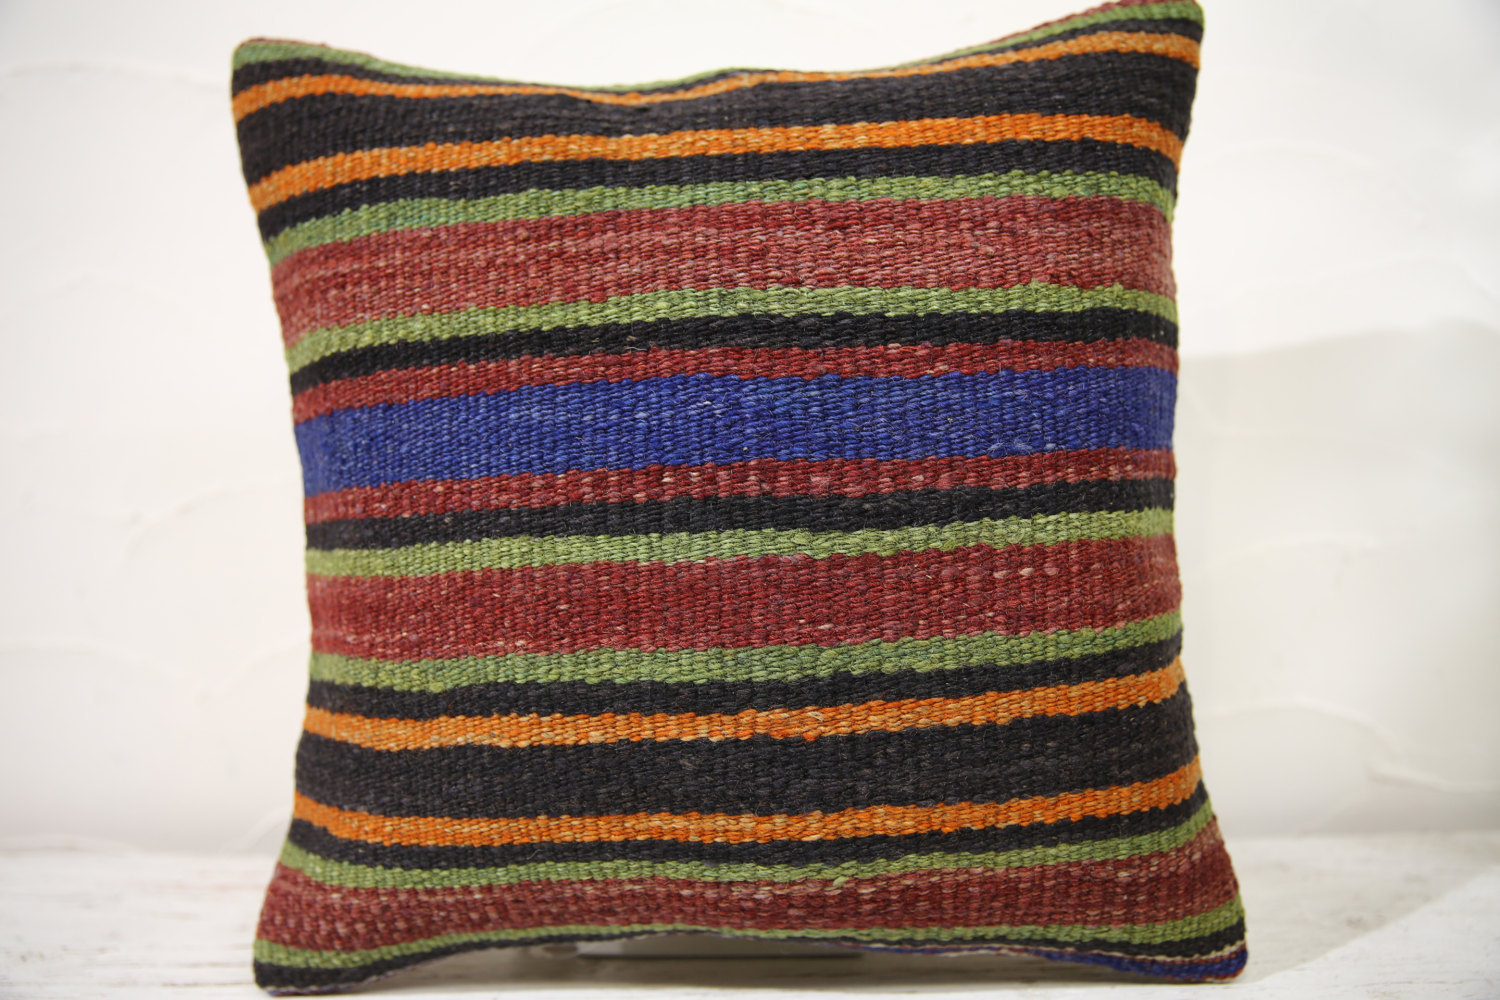 Kilim Pillows | 16x16 | Decorative Pillows | 823 | Accent Pillows,turkish pillow